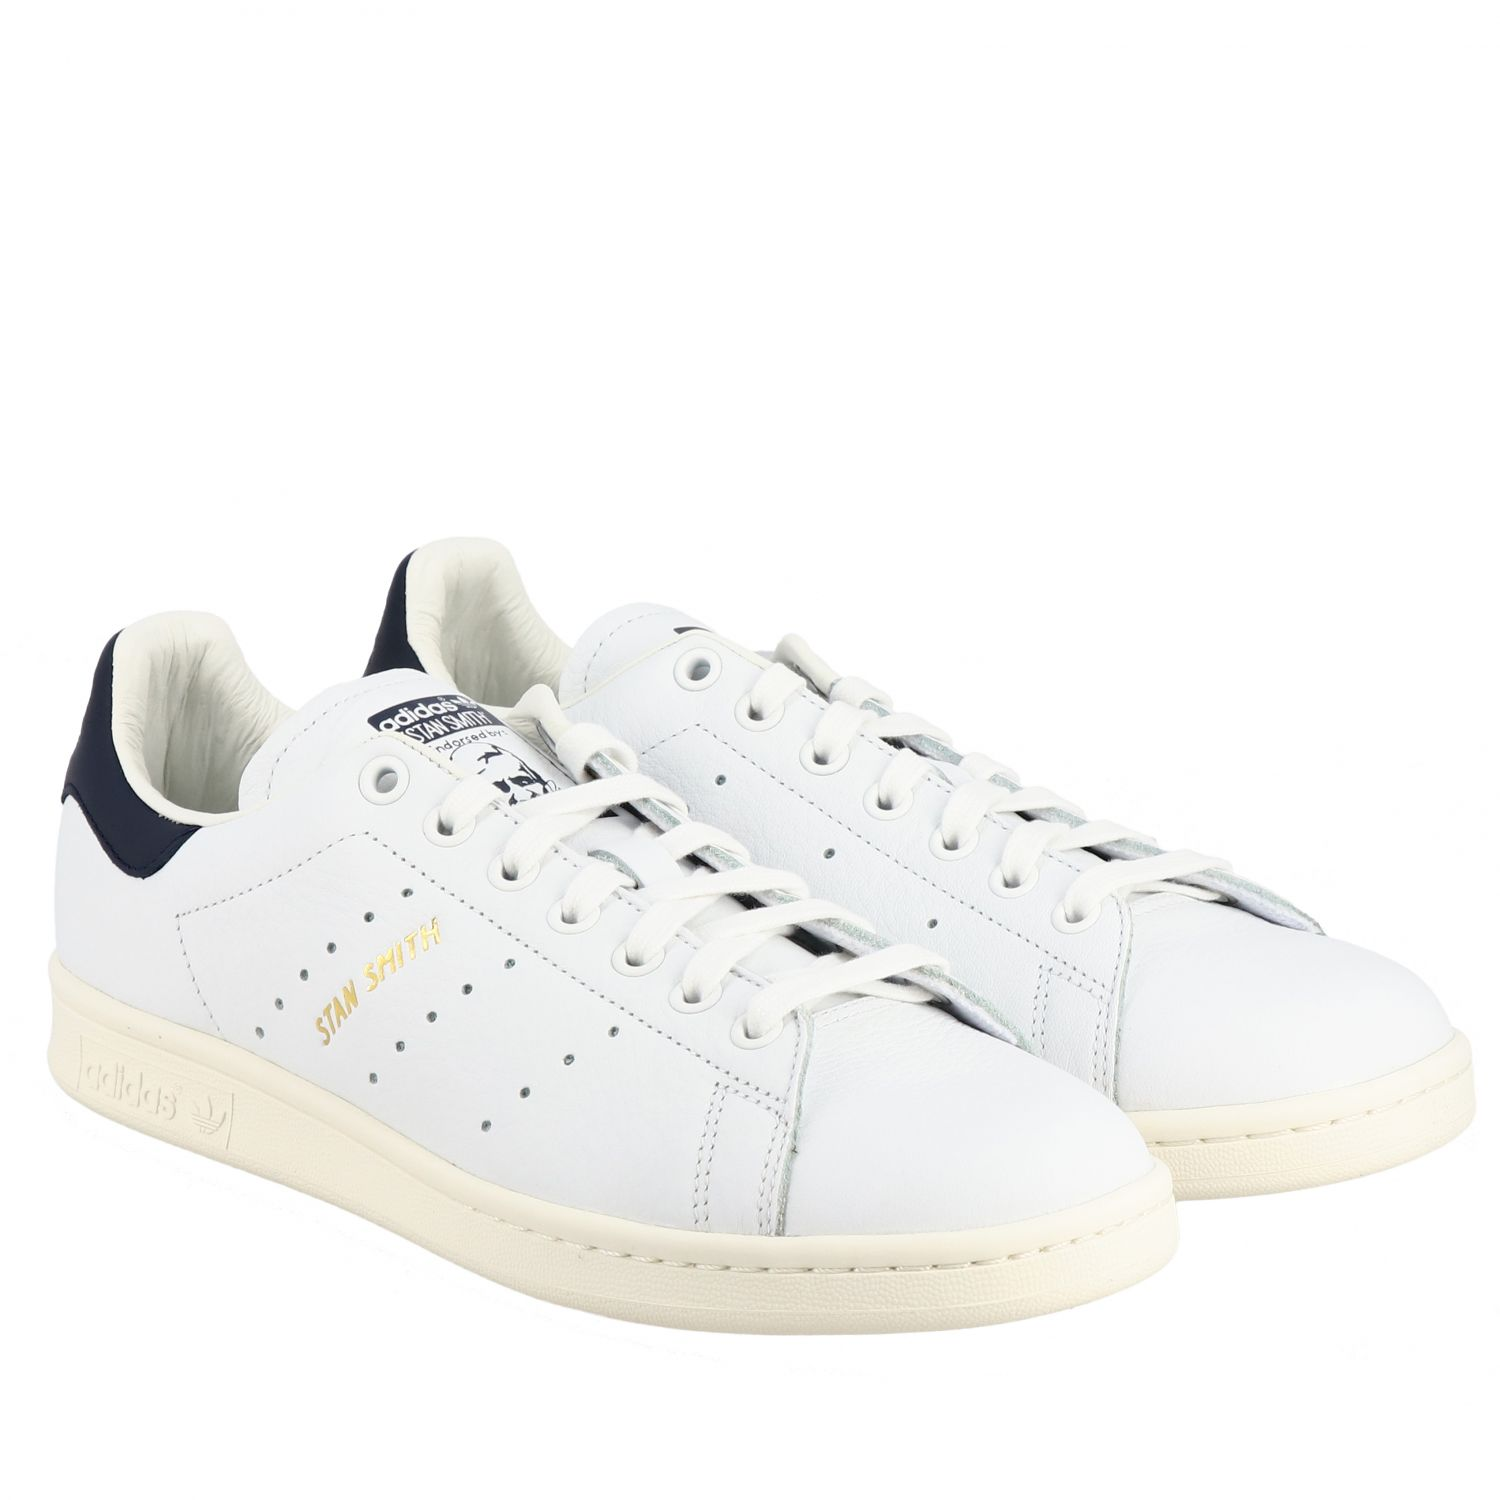 Sneakers Adidas Originals: Stan smith Adidas Originals leather sneakers white 2